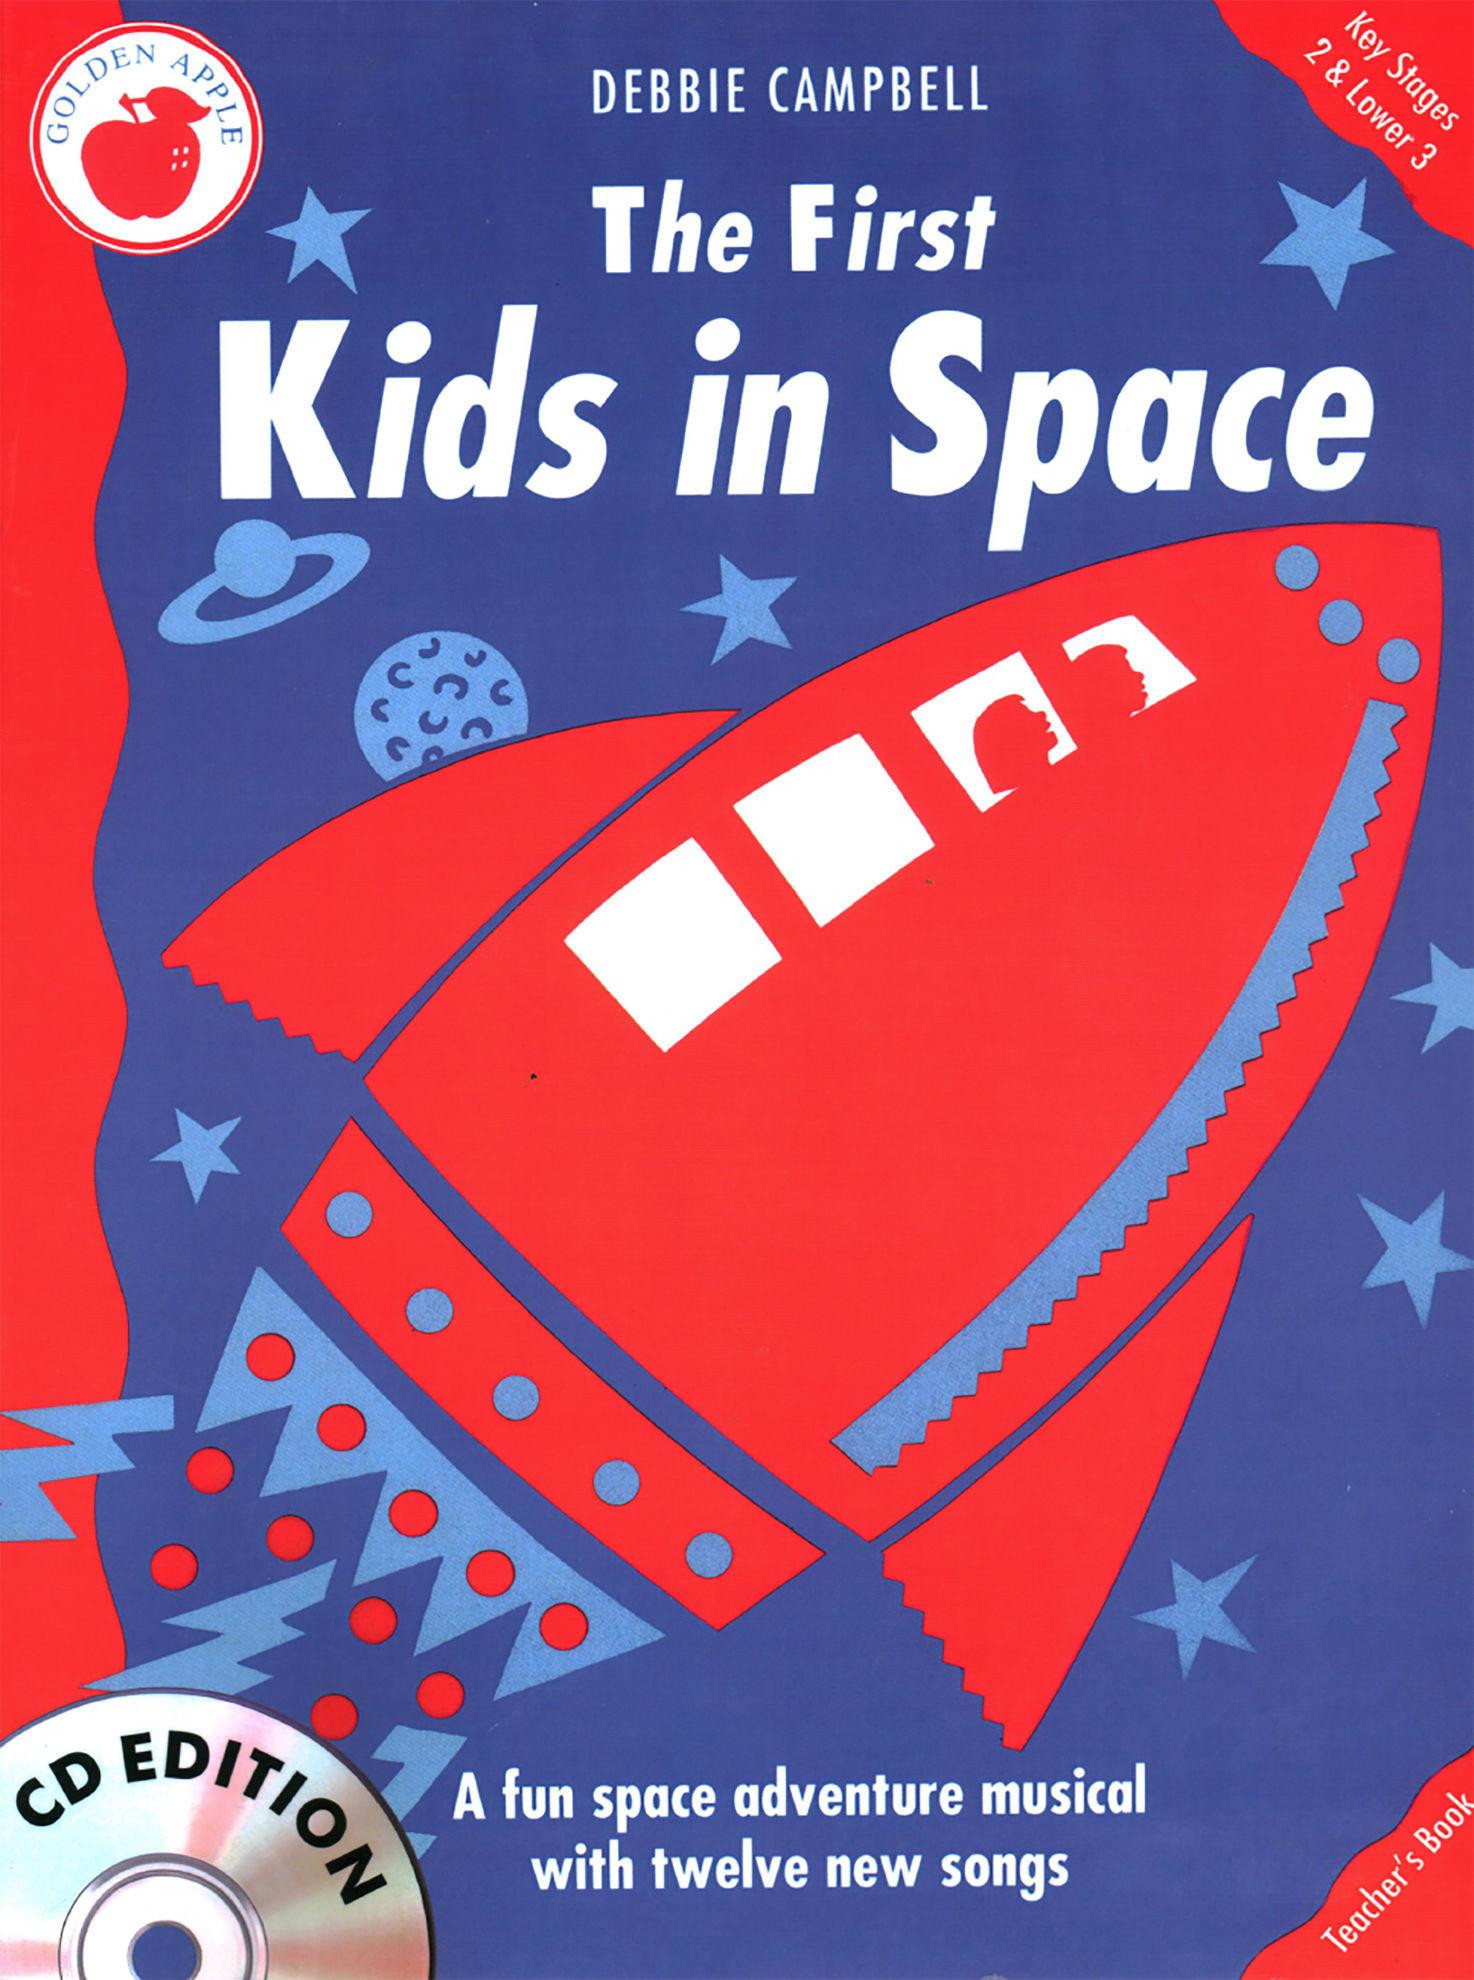 The First Kids in Space